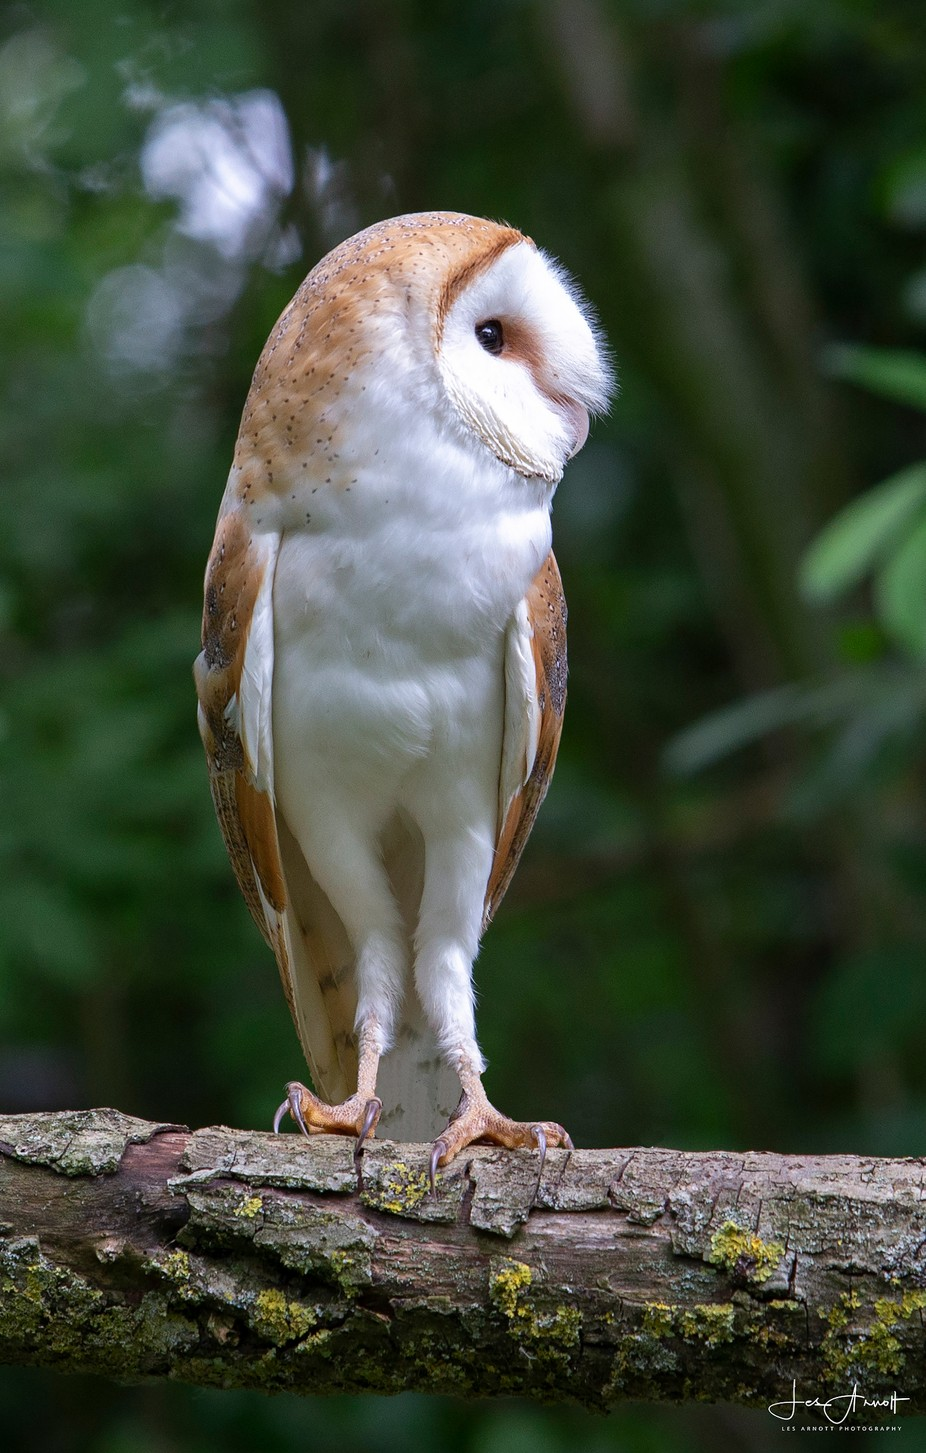 Barn Owl by lesarnott - Image Of The Month Photo Contest Vol 32